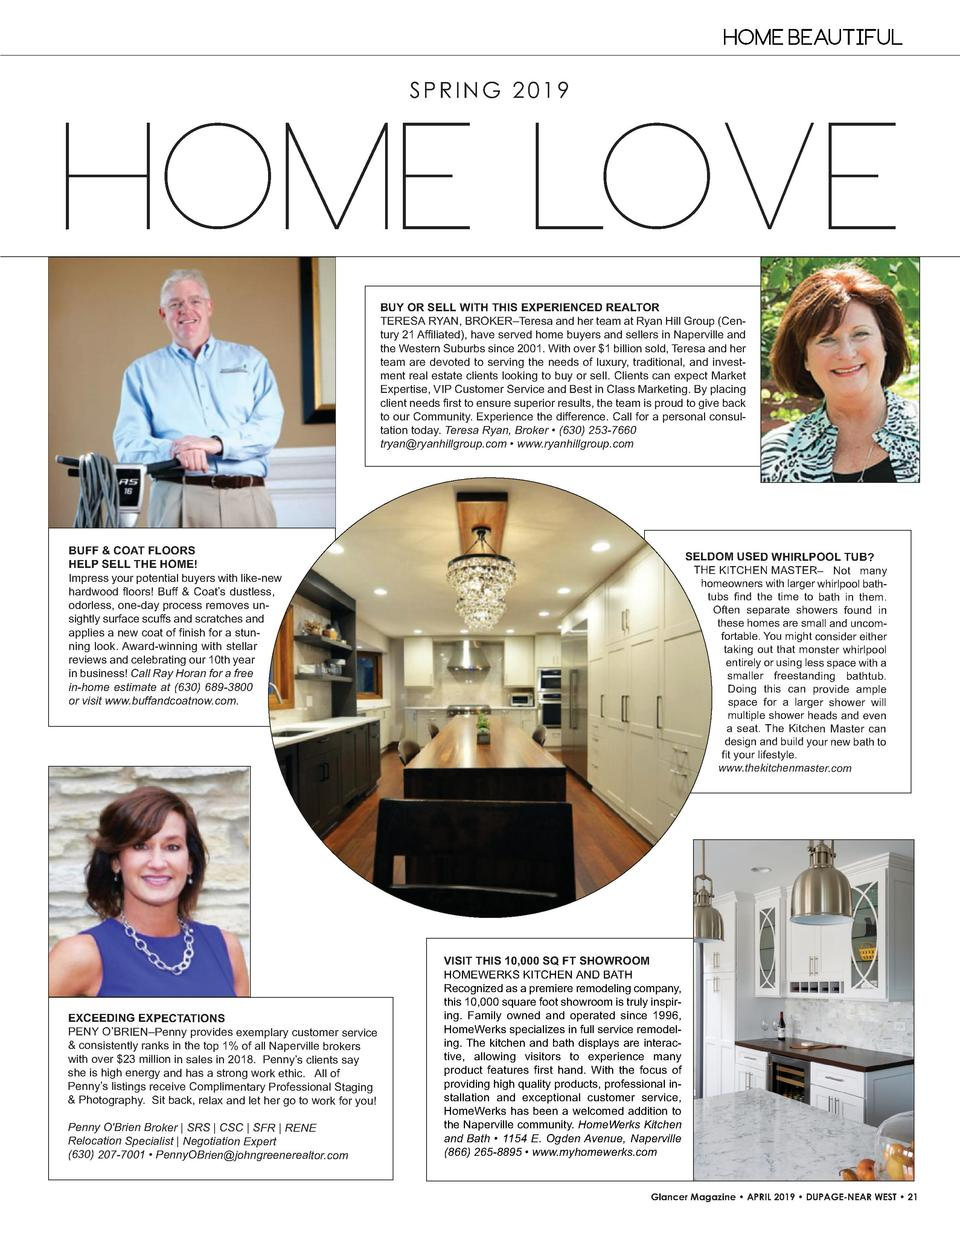 HOME BEAUTIFUL SPRING 2019  HOME LOVE BUY   OR   SELL   WITH   THIS   EXPERIENCED   REALTOR TERESA   RYAN, BROKER   Teresa...